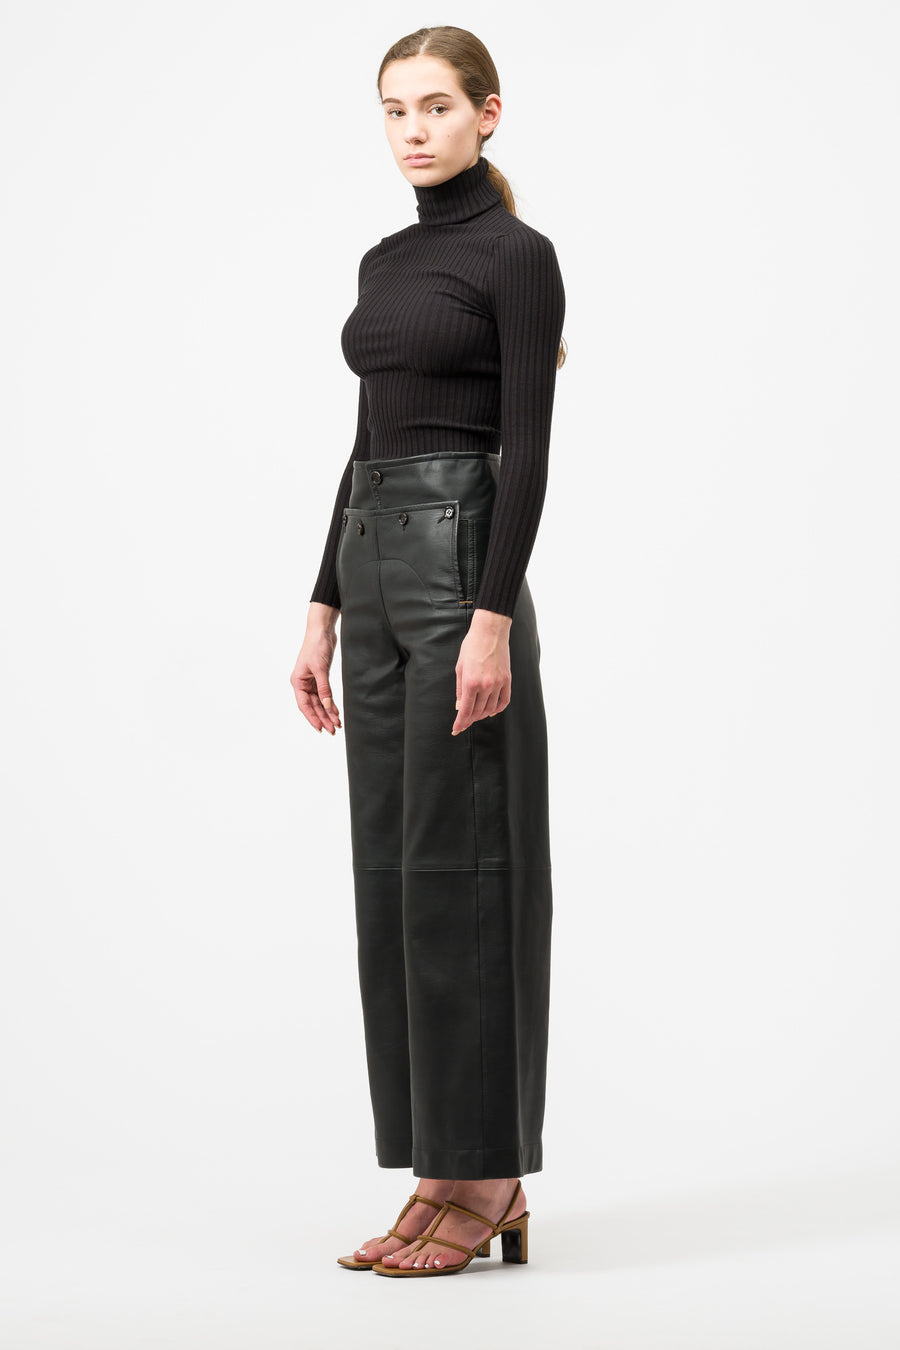 Marni Leather Trouser in Black - Notre